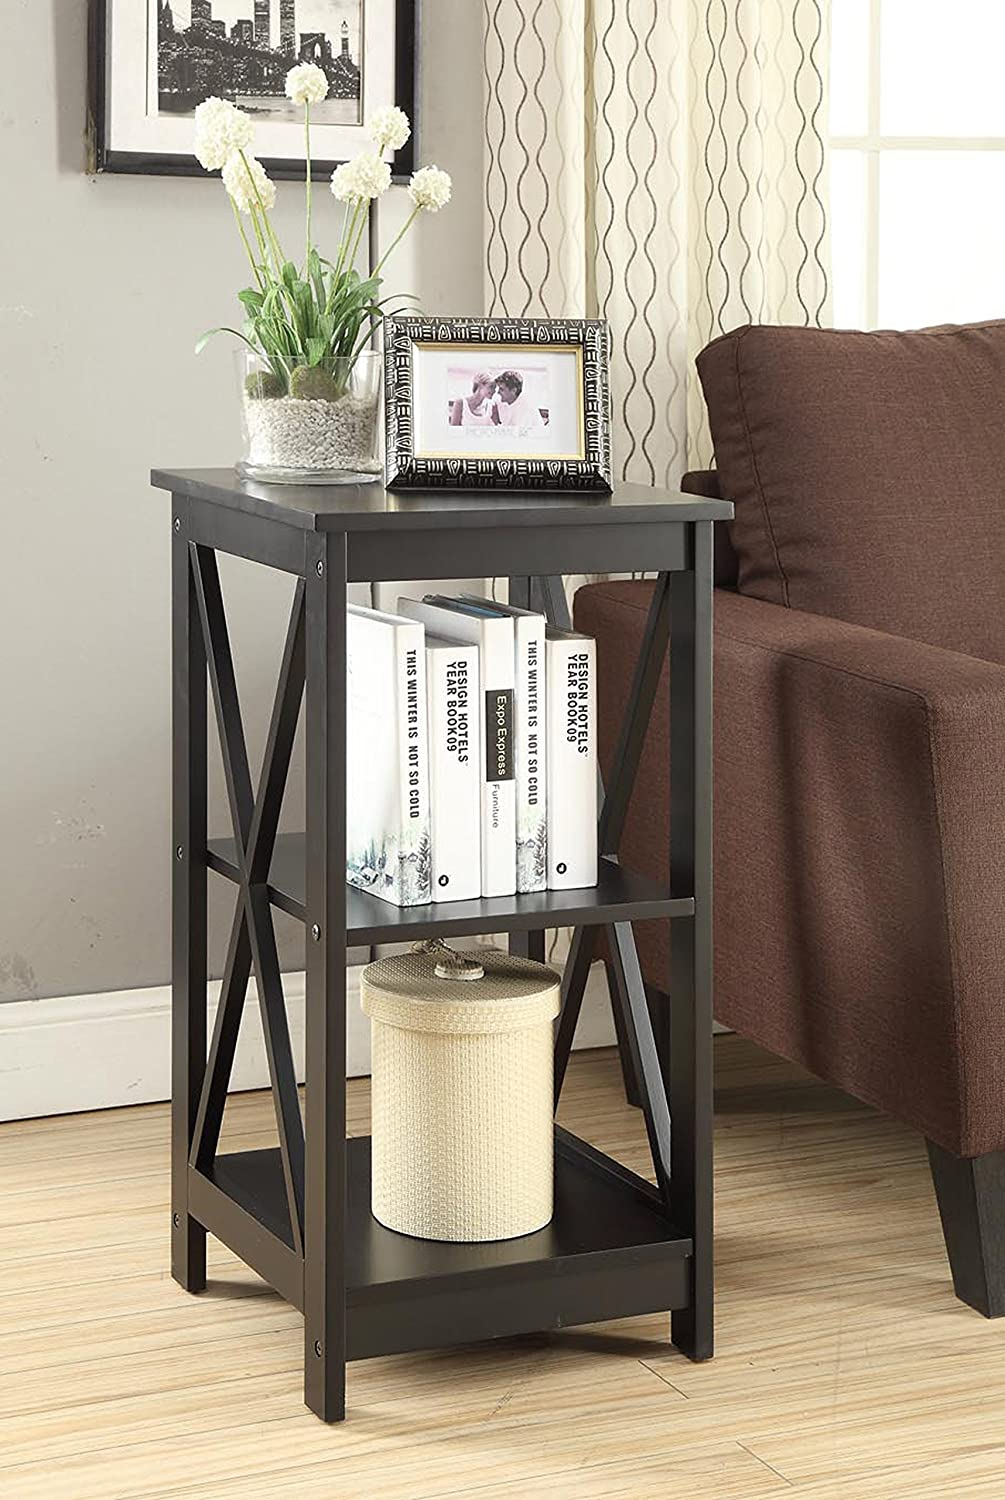 Amazon.com: Convenience Concepts Oxford End Table, Black: Kitchen U0026 Dining